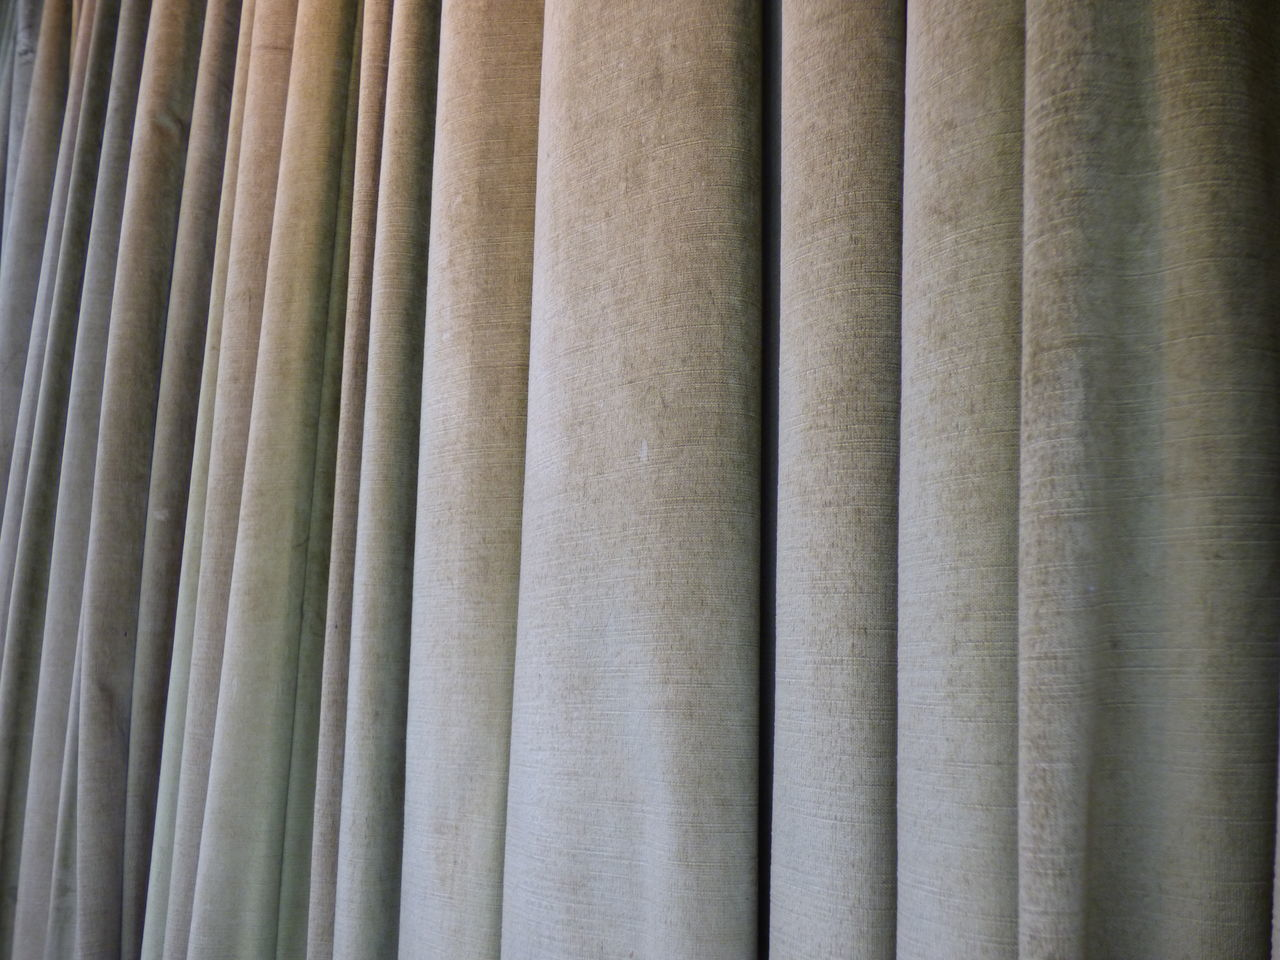 backgrounds, full frame, repetition, curtain, no people, close-up, textured, industry, indoors, day